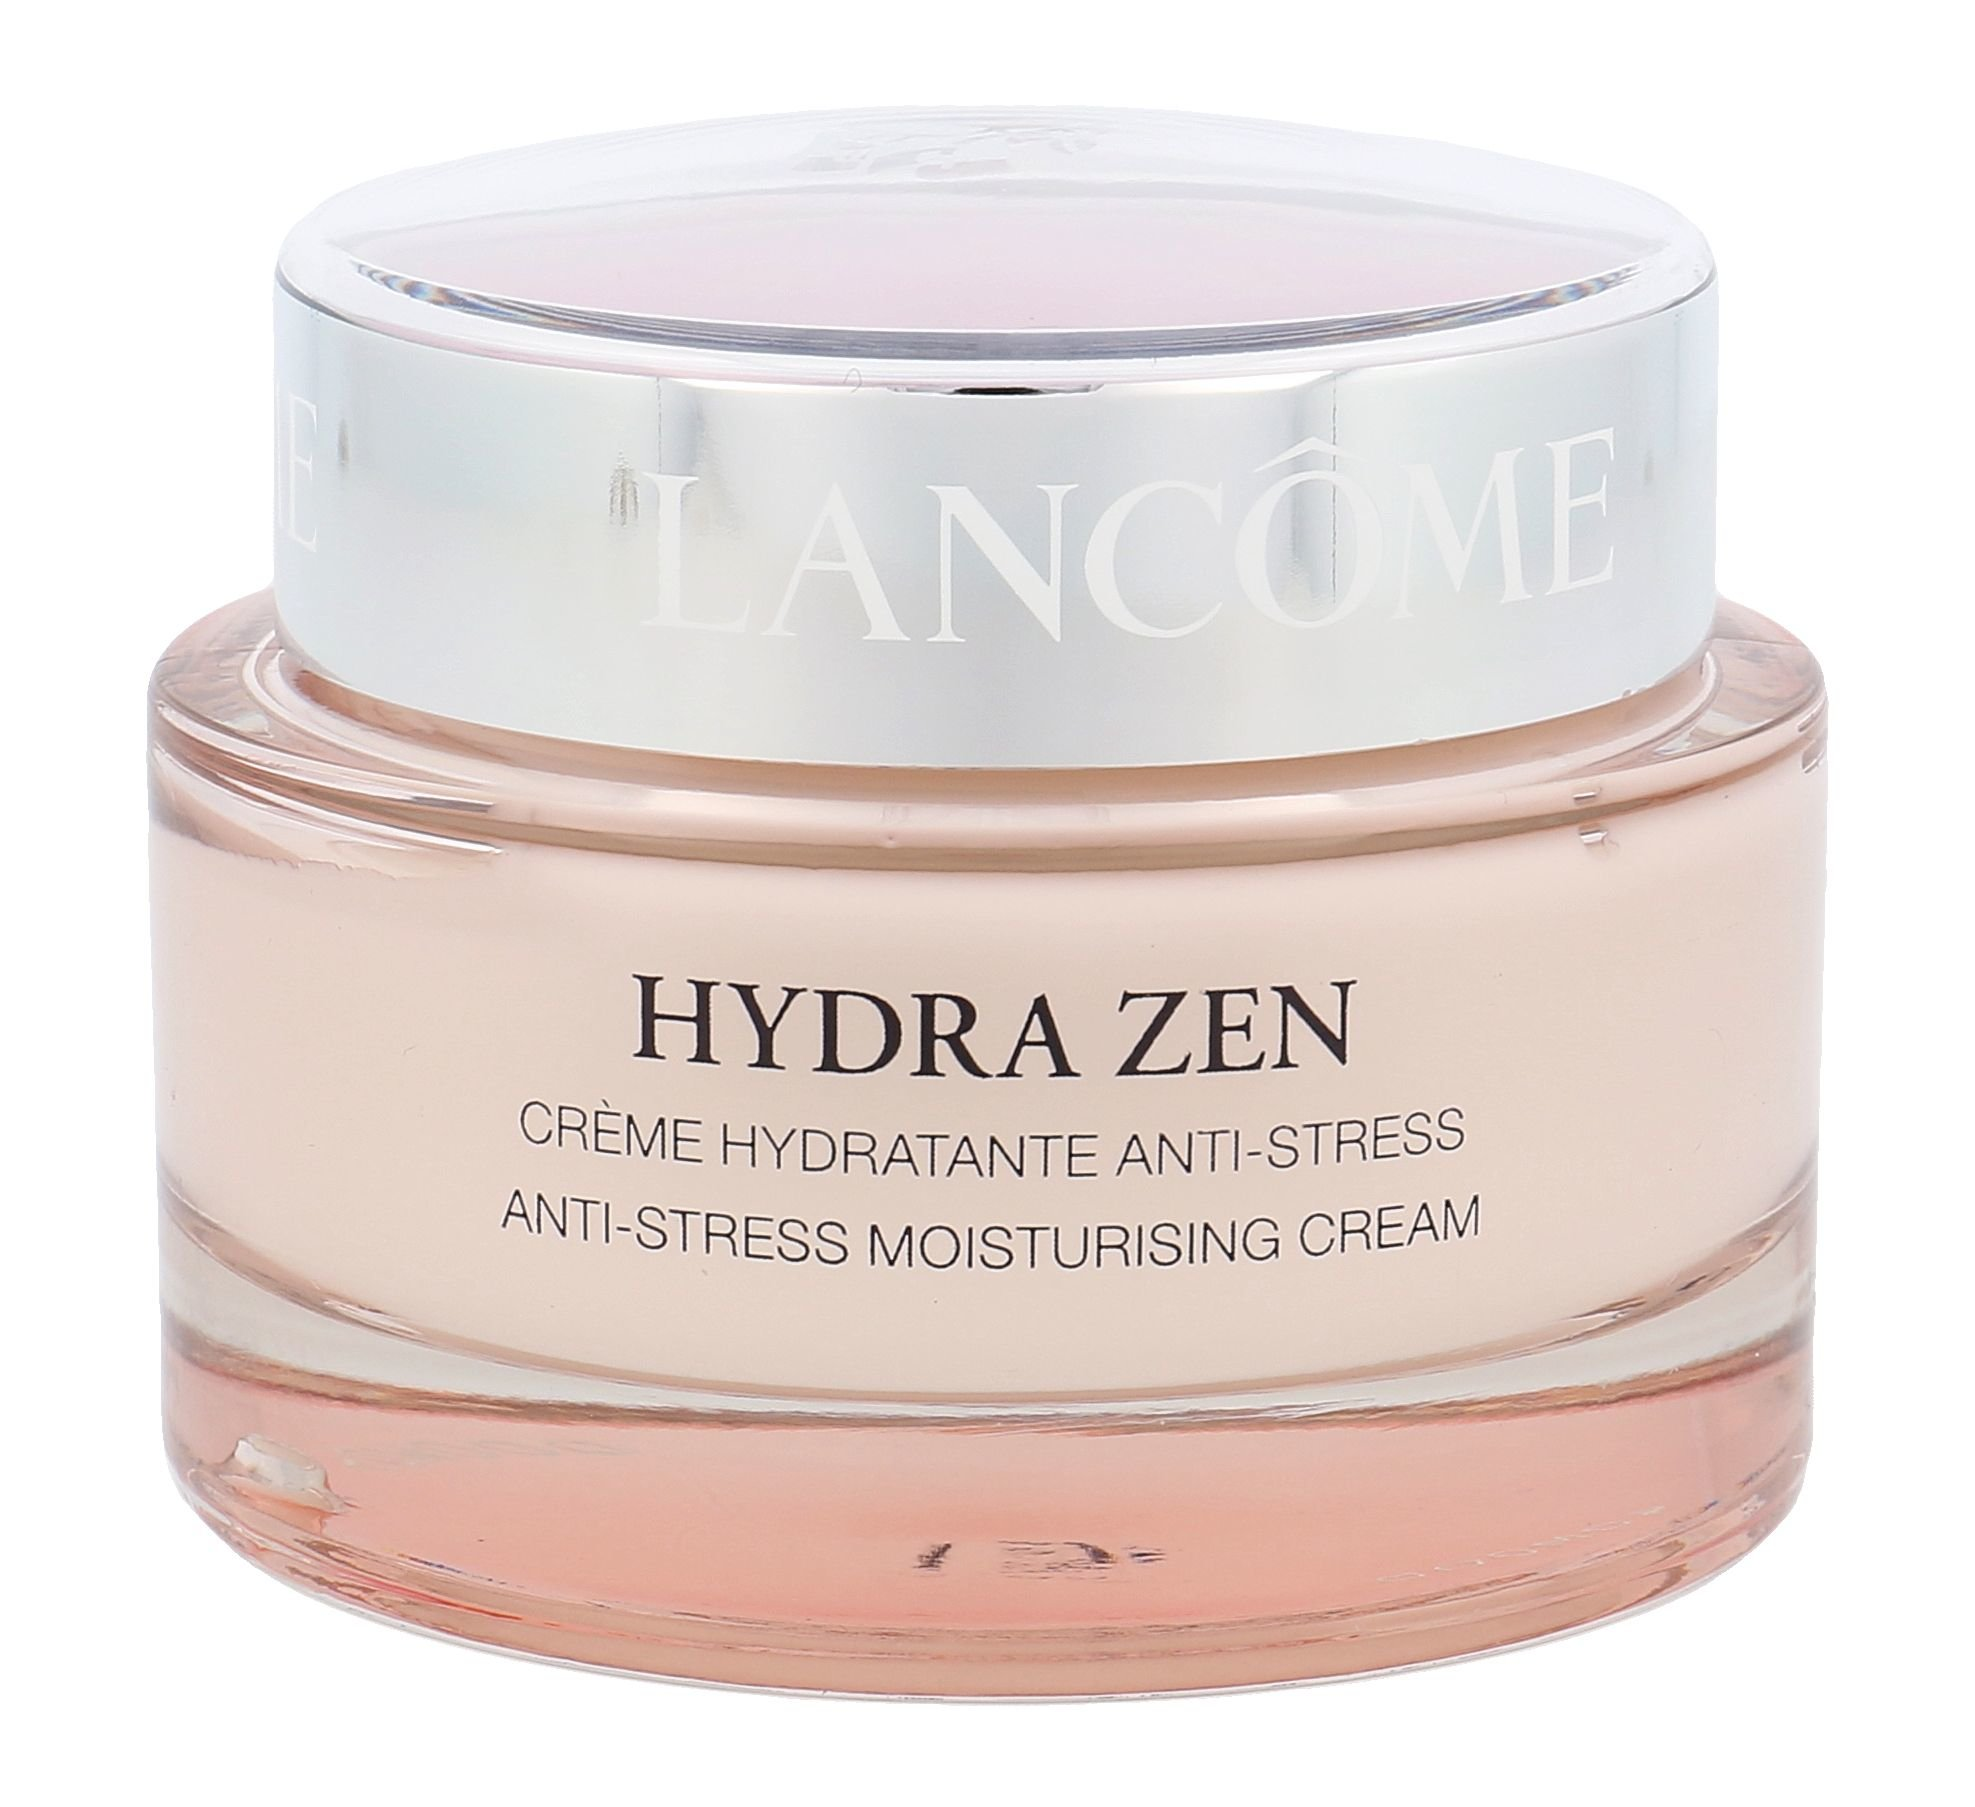 Lancôme Hydra Zen Day Cream 75ml